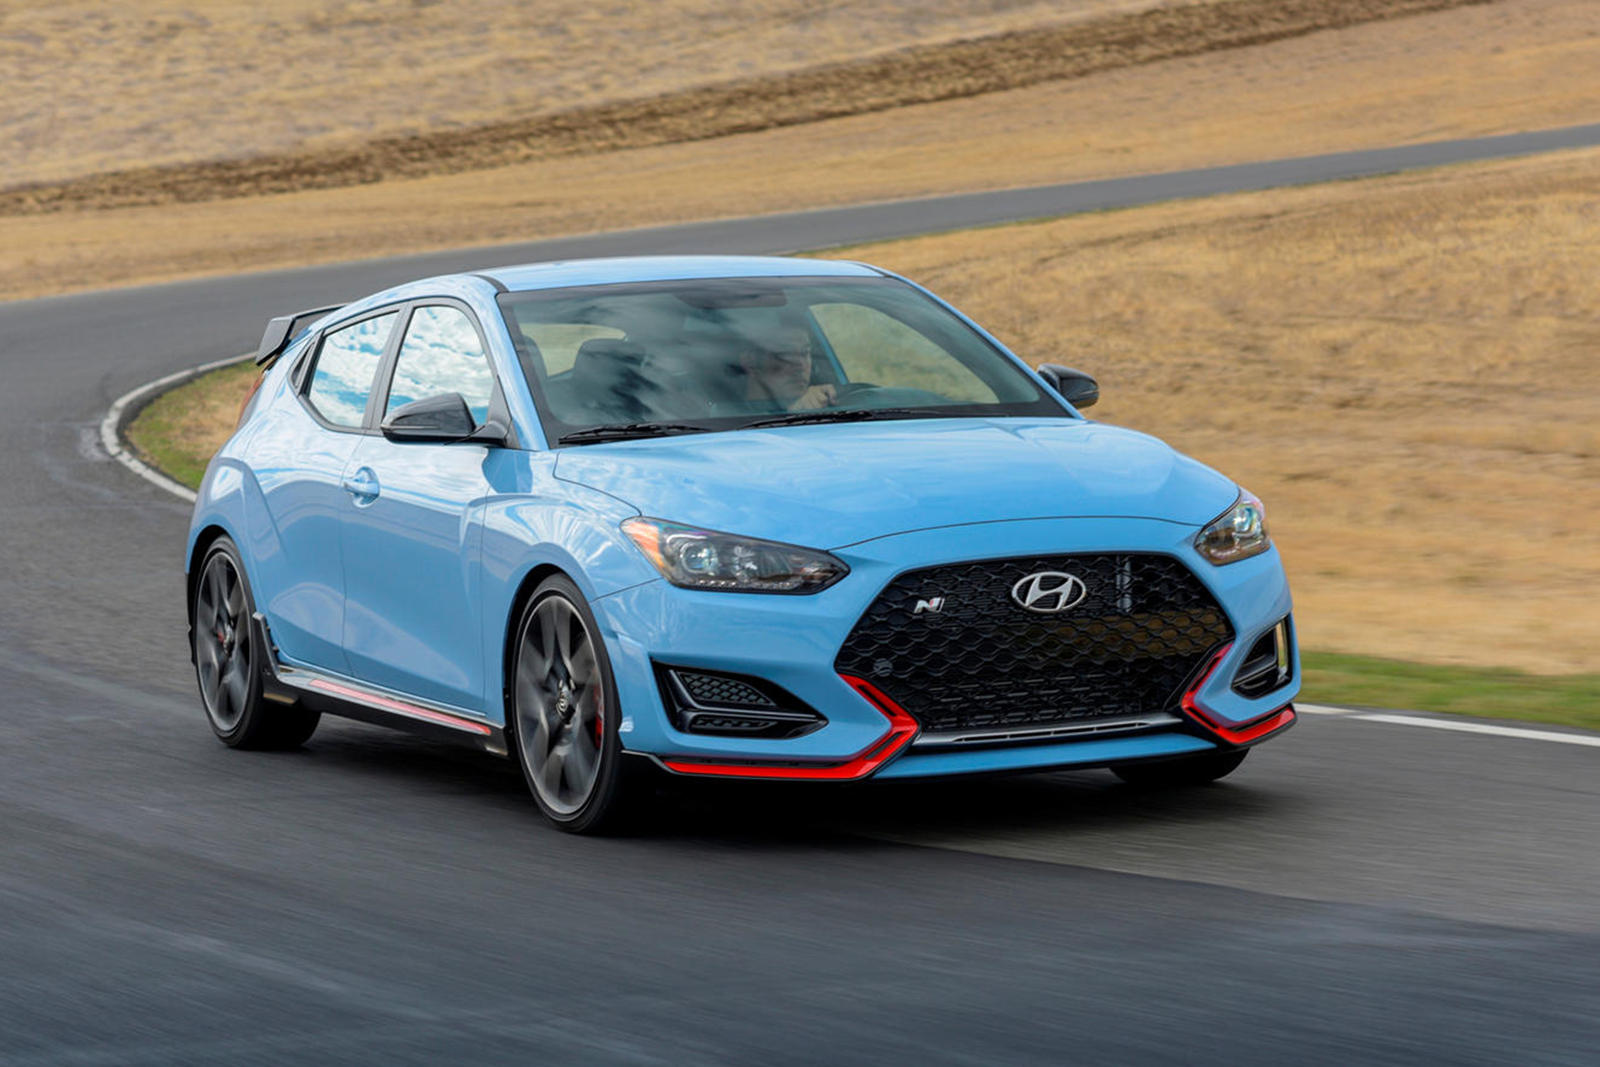 2020 Hyundai Veloster Returns To Haunt Ford   CarBuzz